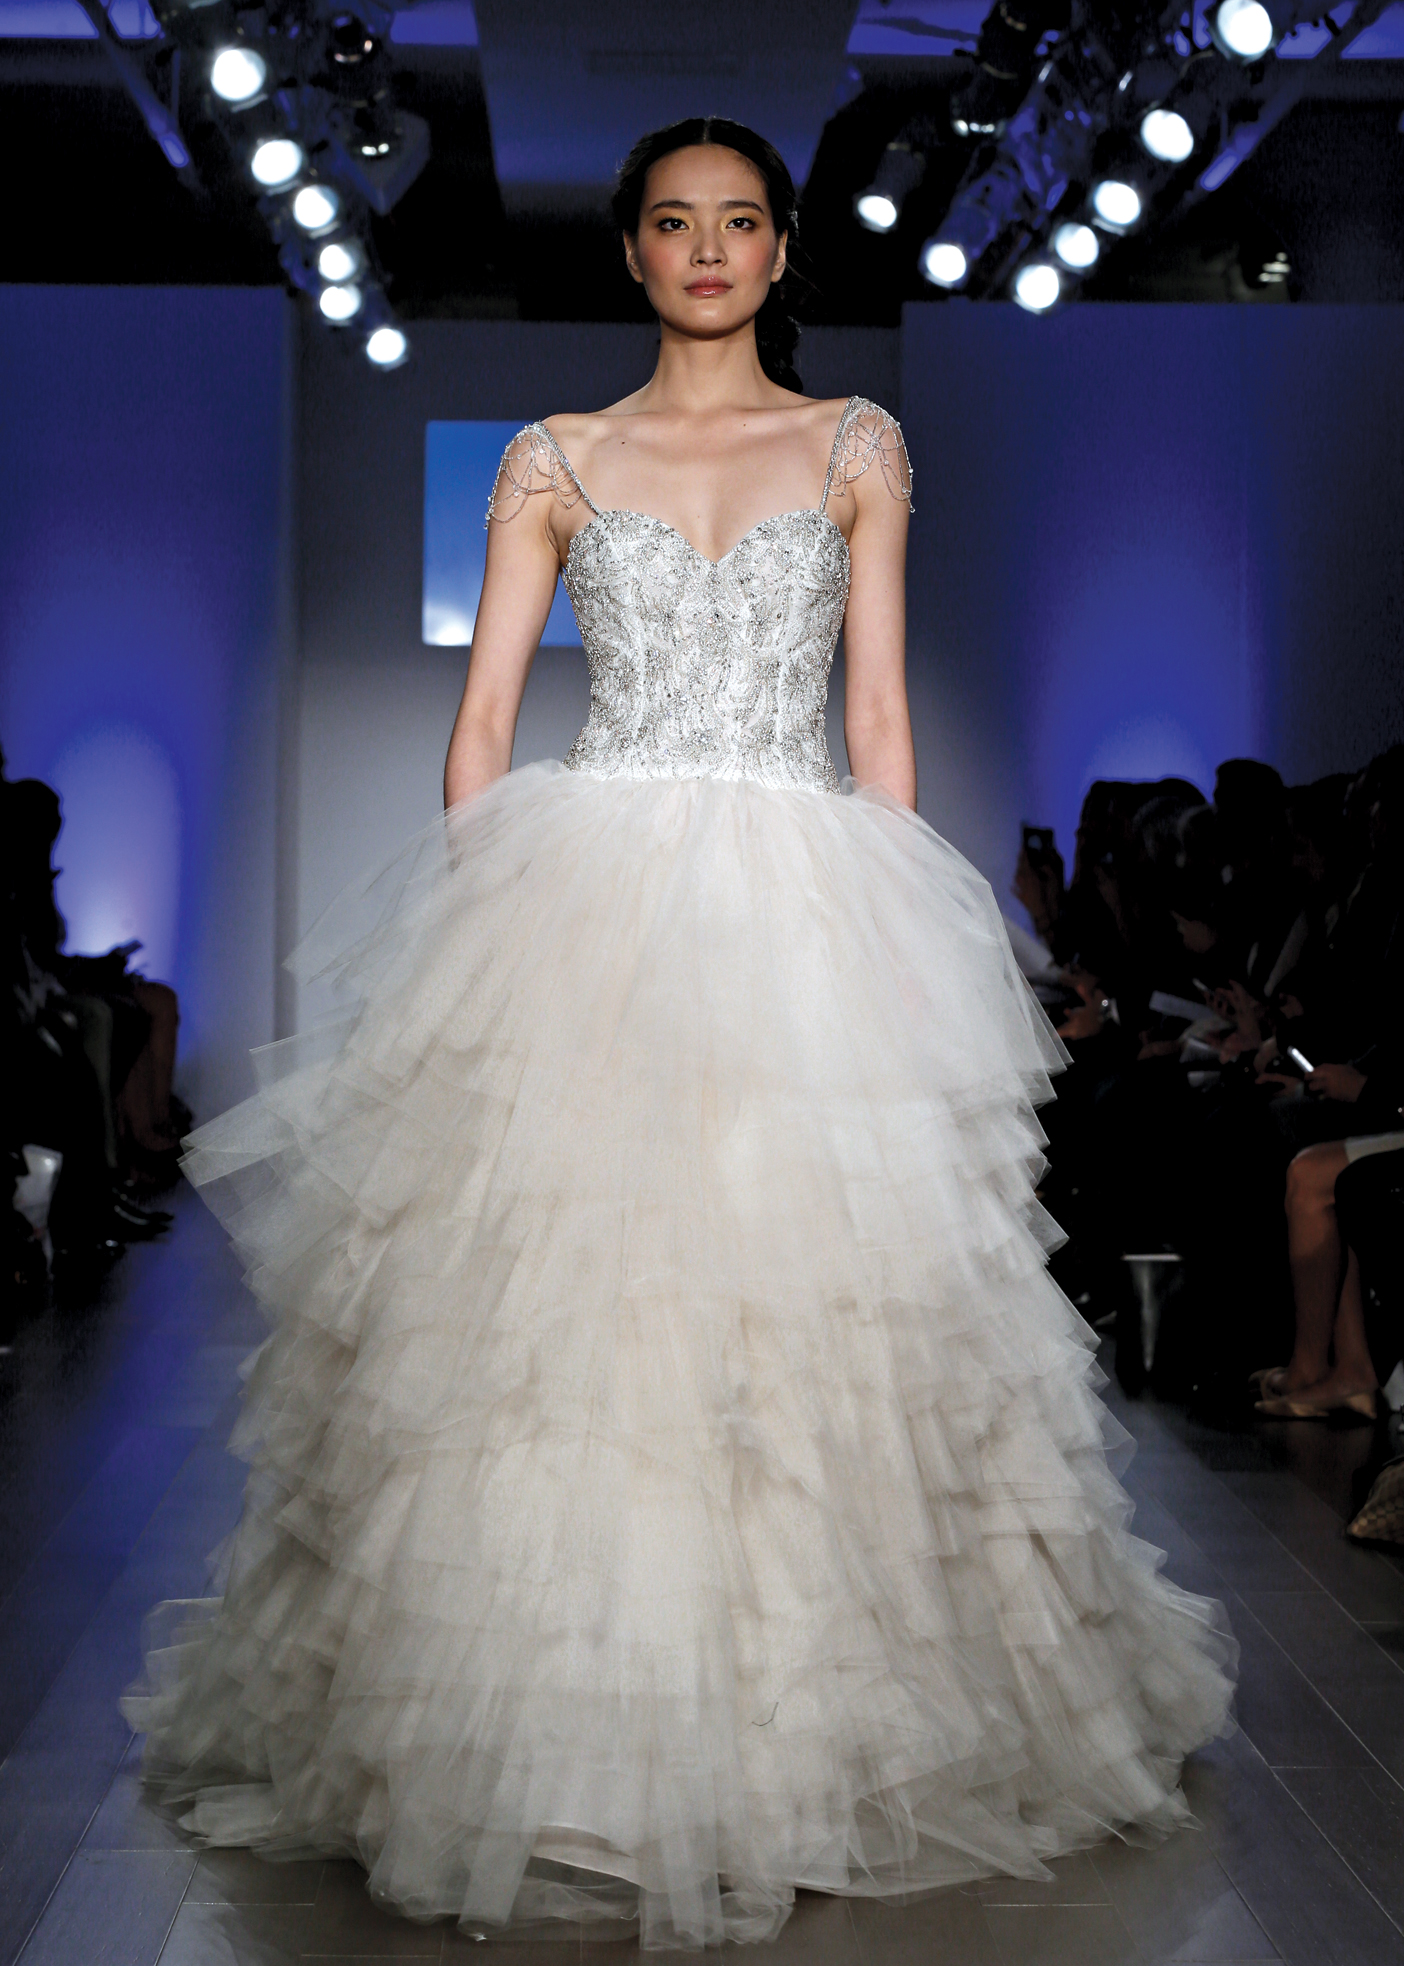 Vows wedding gowns nj wedding dresses asian for Wedding dress consignment nj